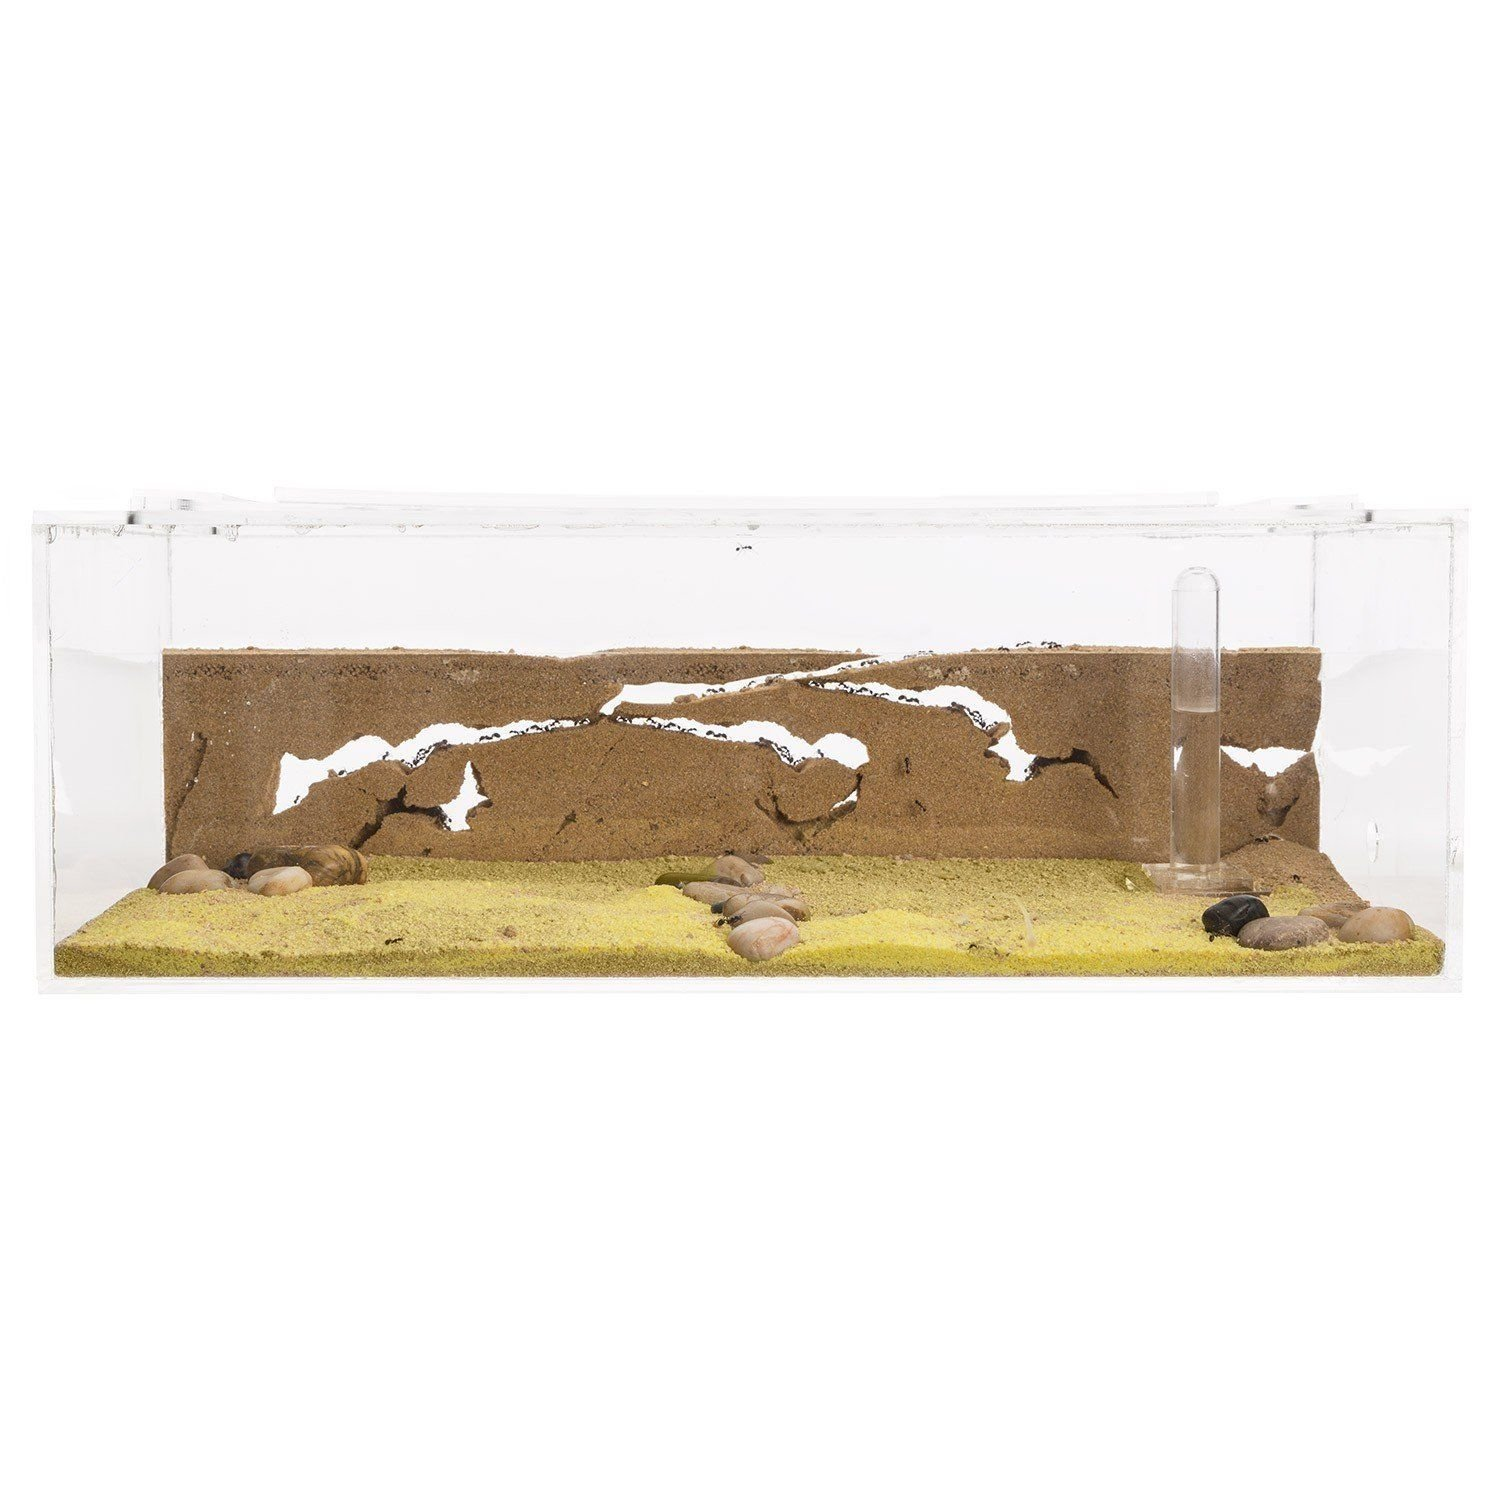 Sand Ant Farm Big - Anthill, Formicarium, Educational, Ants - by anthouse